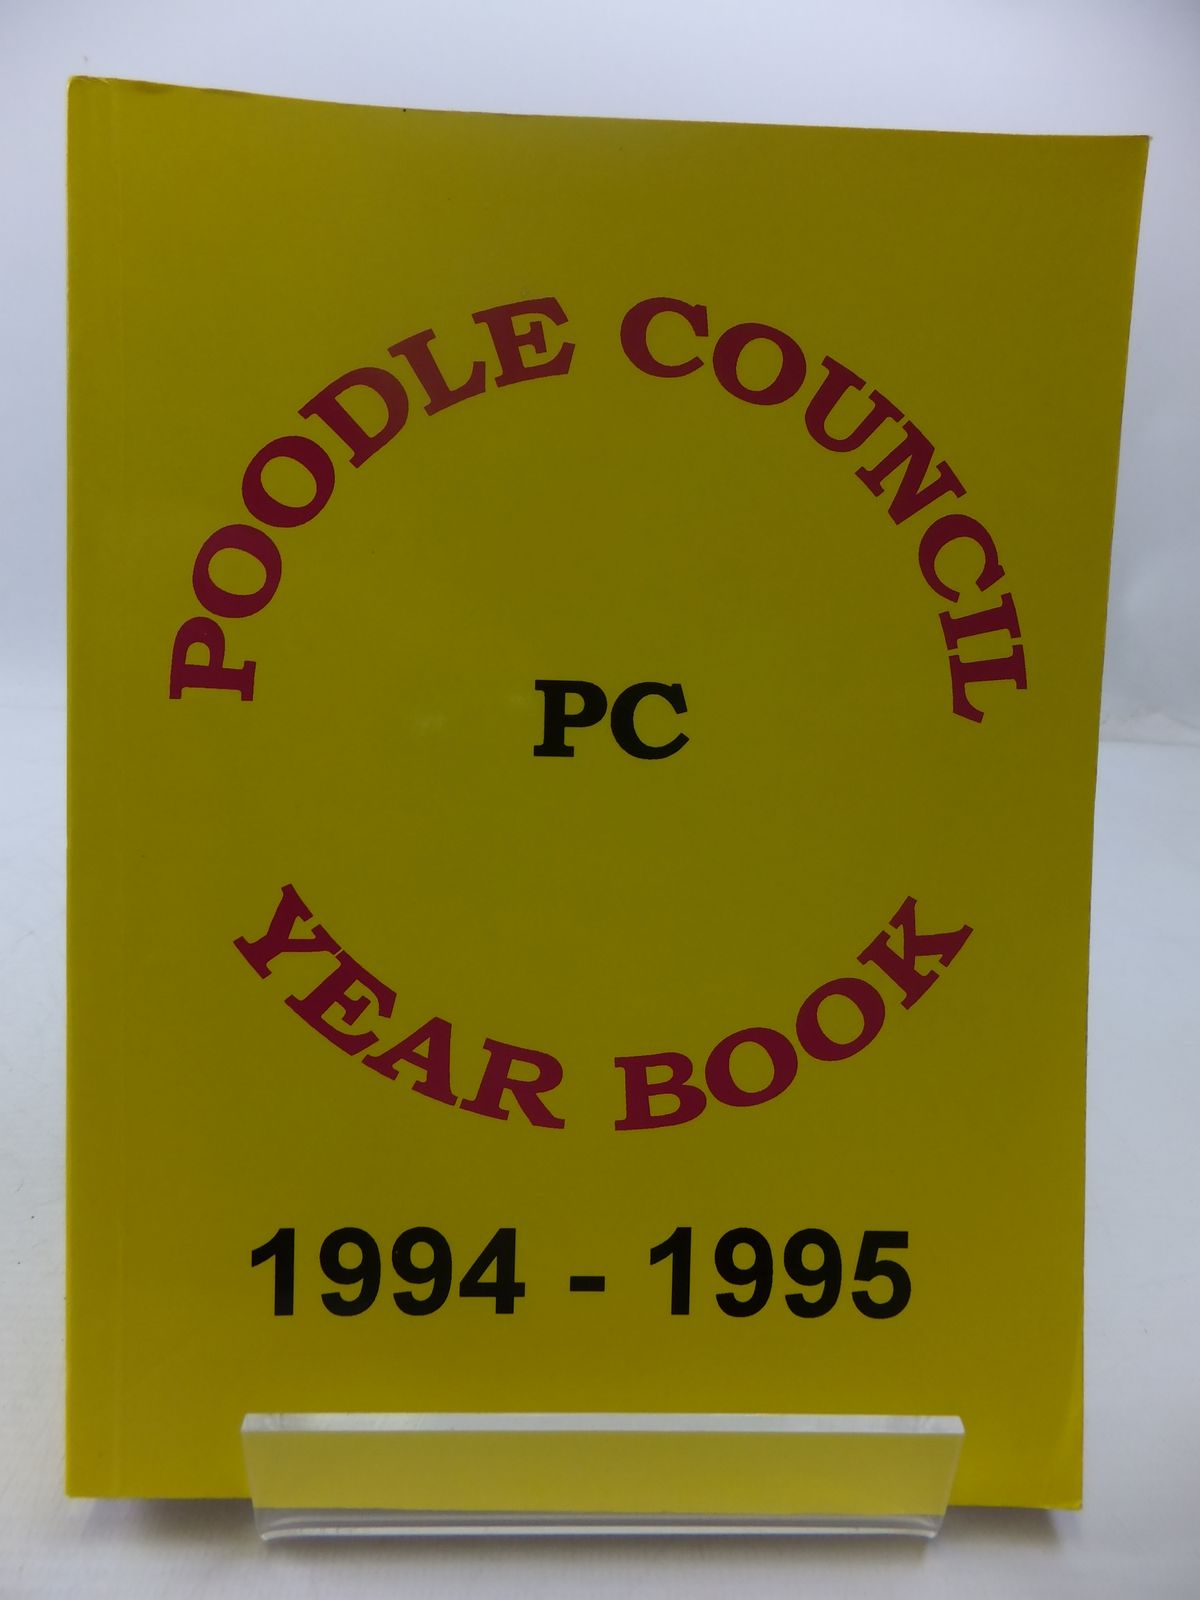 Photo of POODLE COUNCIL YEAR BOOK 1994-1995 published by The Poodle Council (STOCK CODE: 1807646)  for sale by Stella & Rose's Books